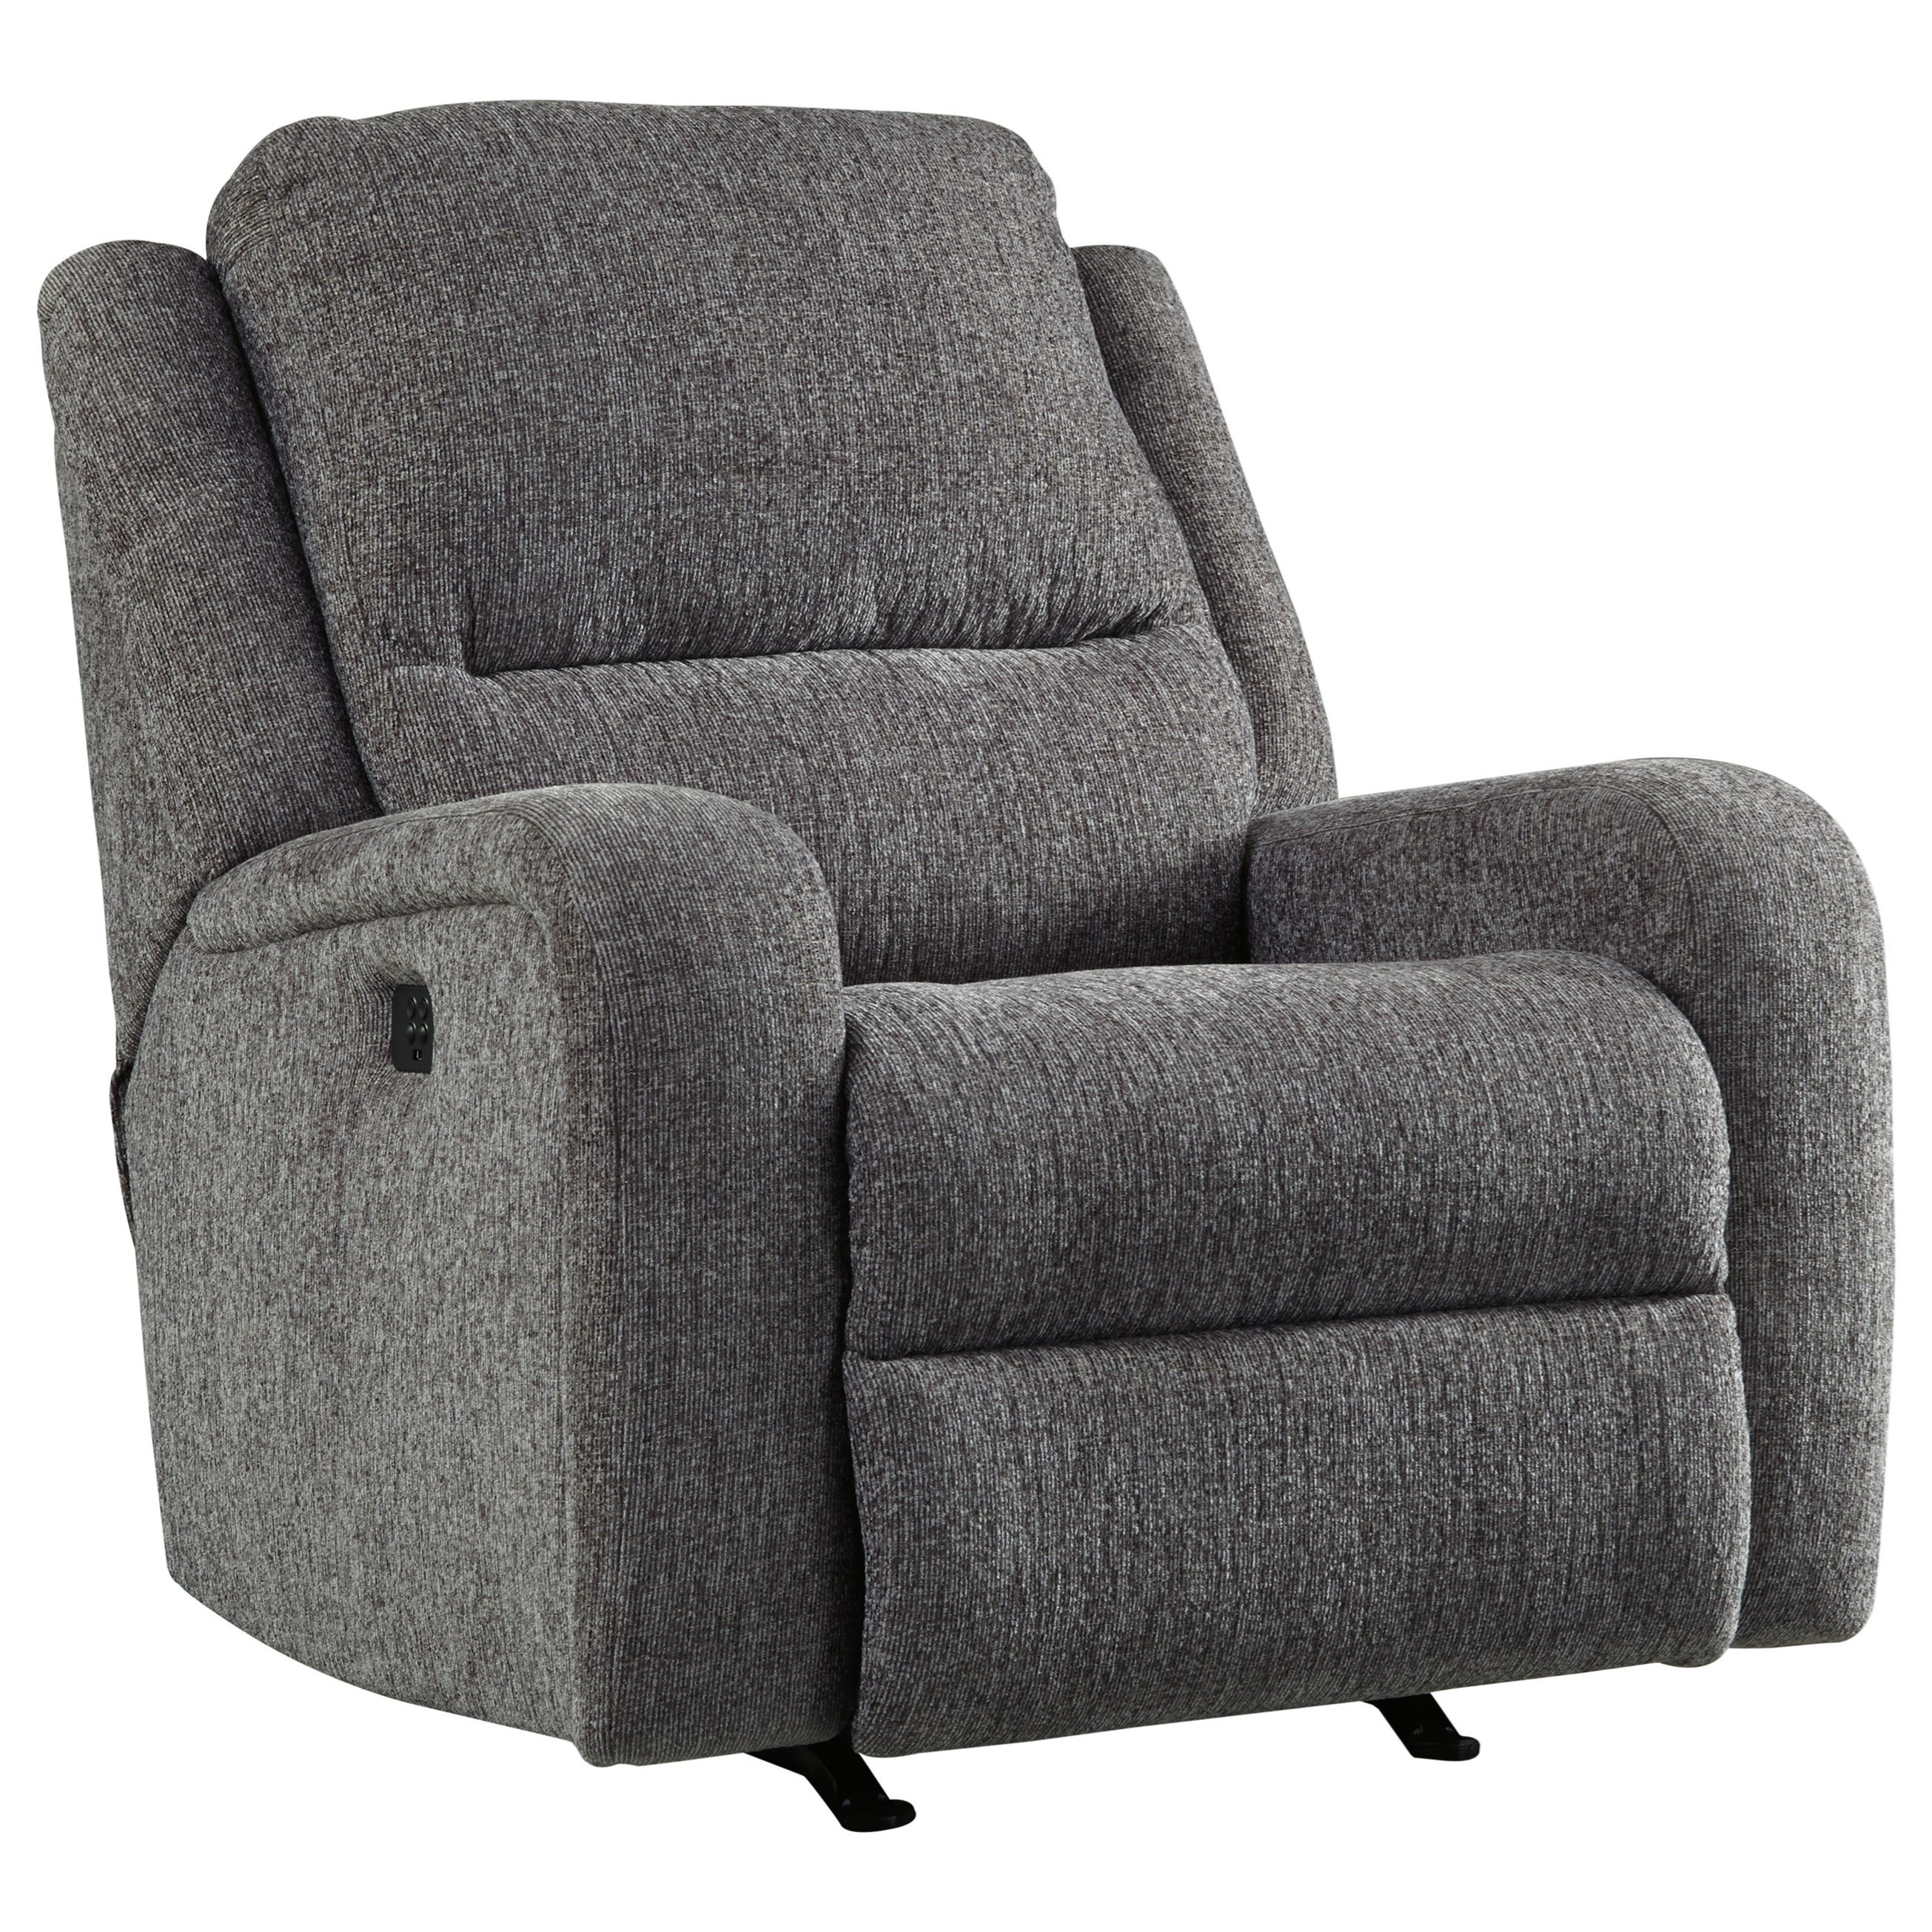 Ashley Recliner Chair Signature Design By Ashley Krismen 7810213 Contemporary